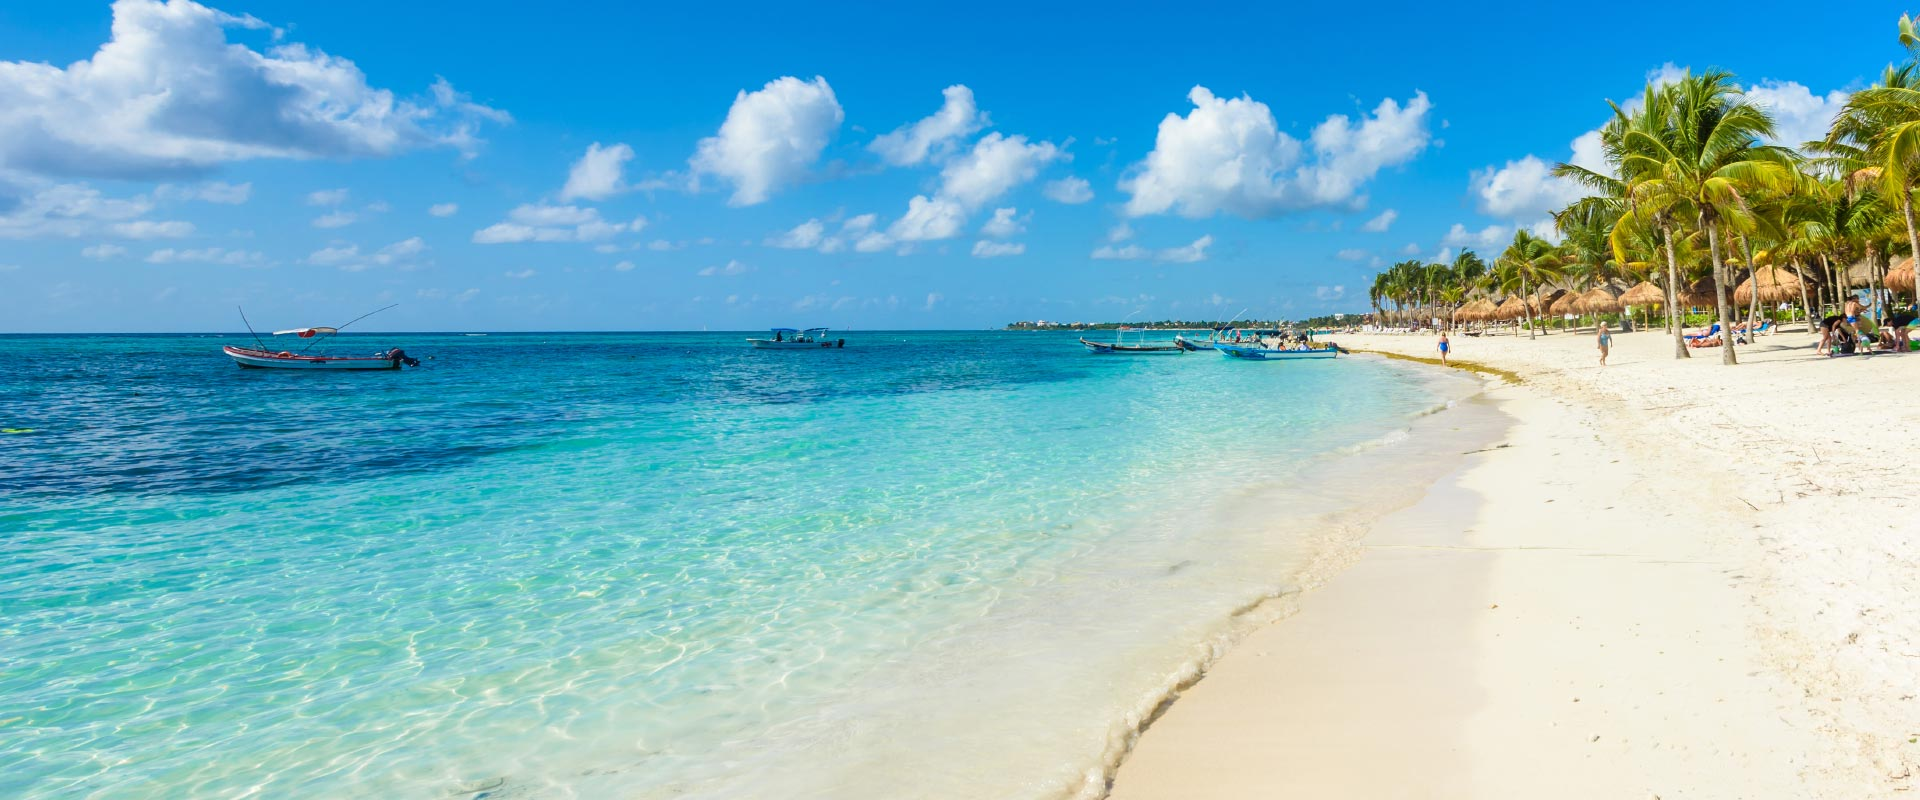 Sunshine holidays - best beaches for your next summer trip